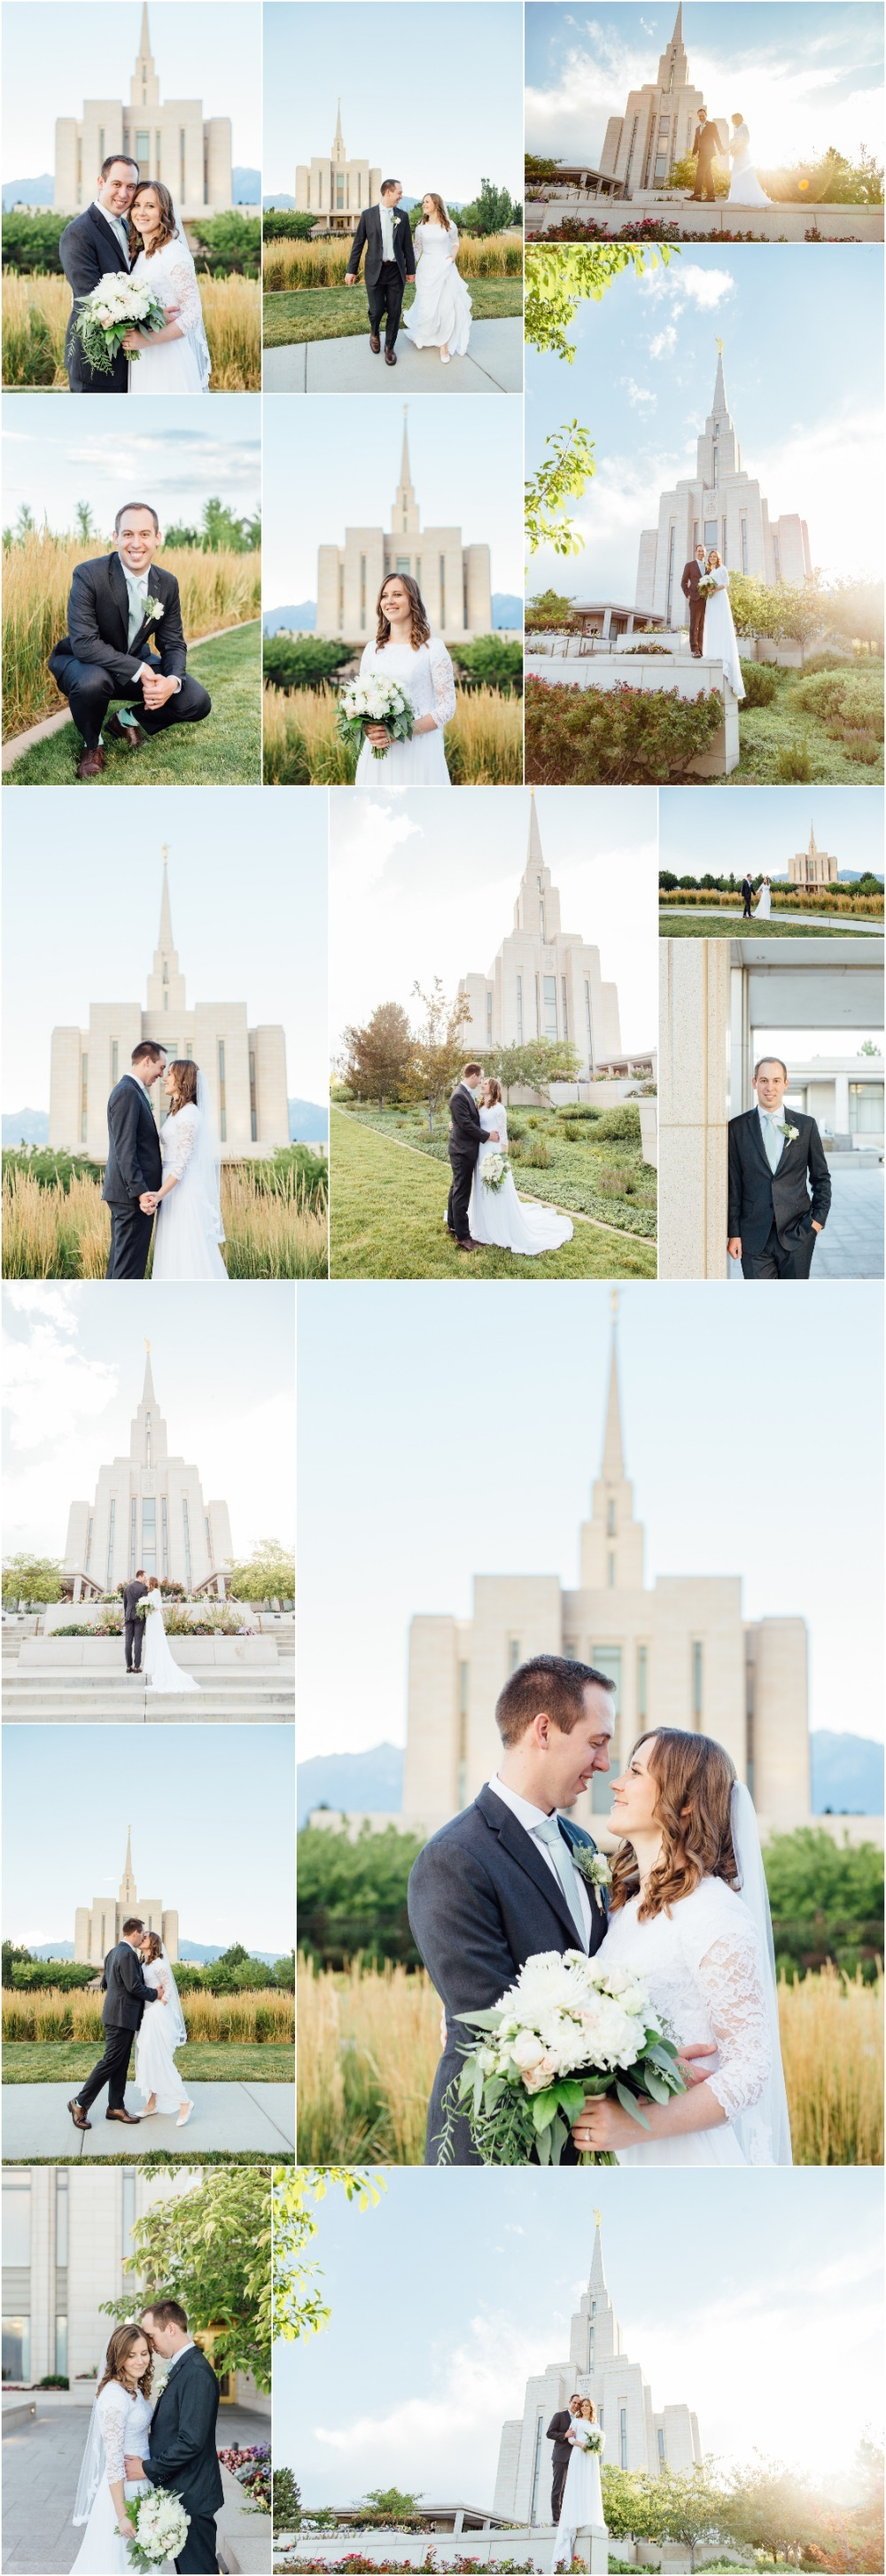 Oquirrh Mountain Temple Bridal Photographer